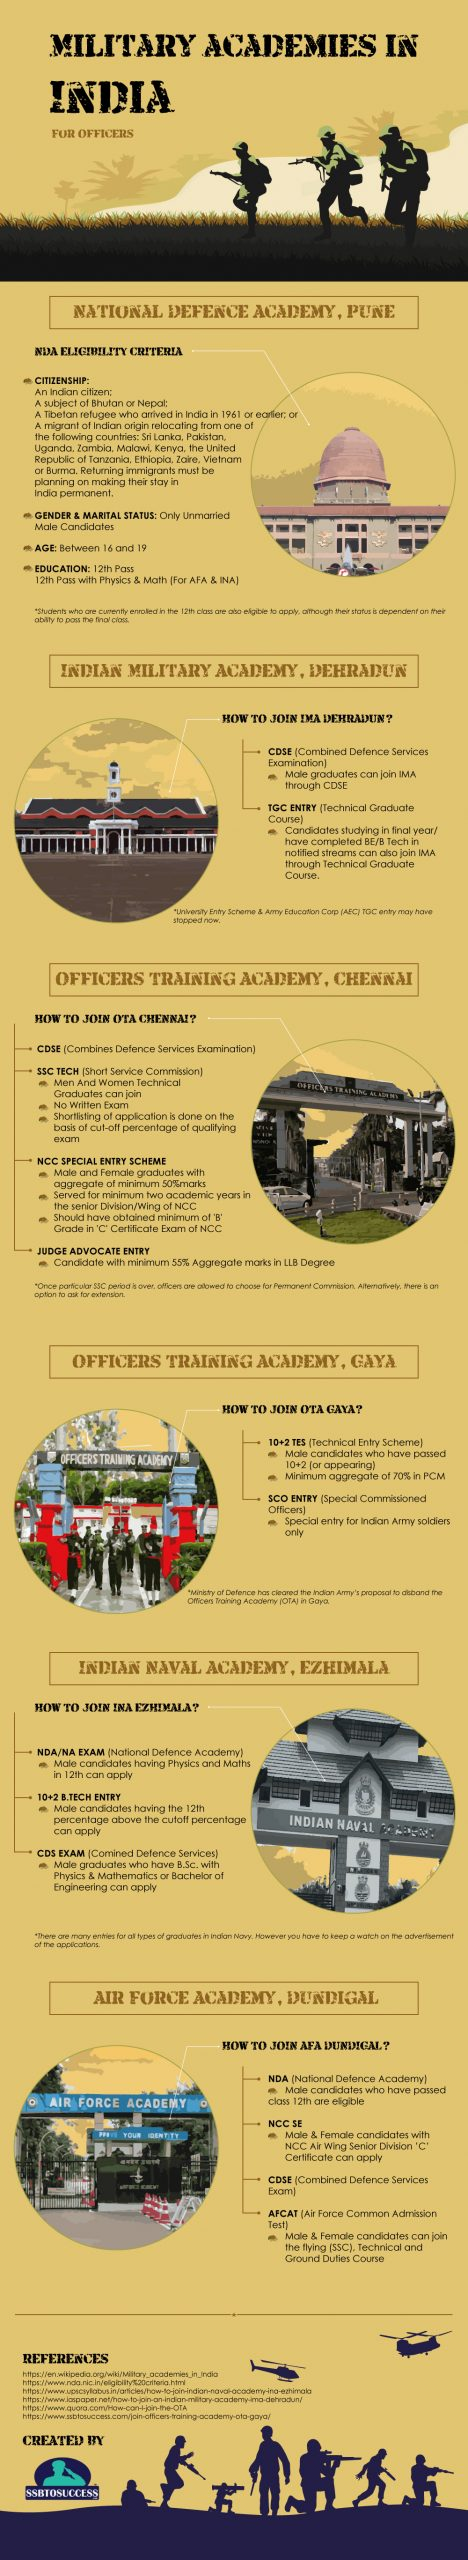 Military Academies in India for Officers [Infographic]